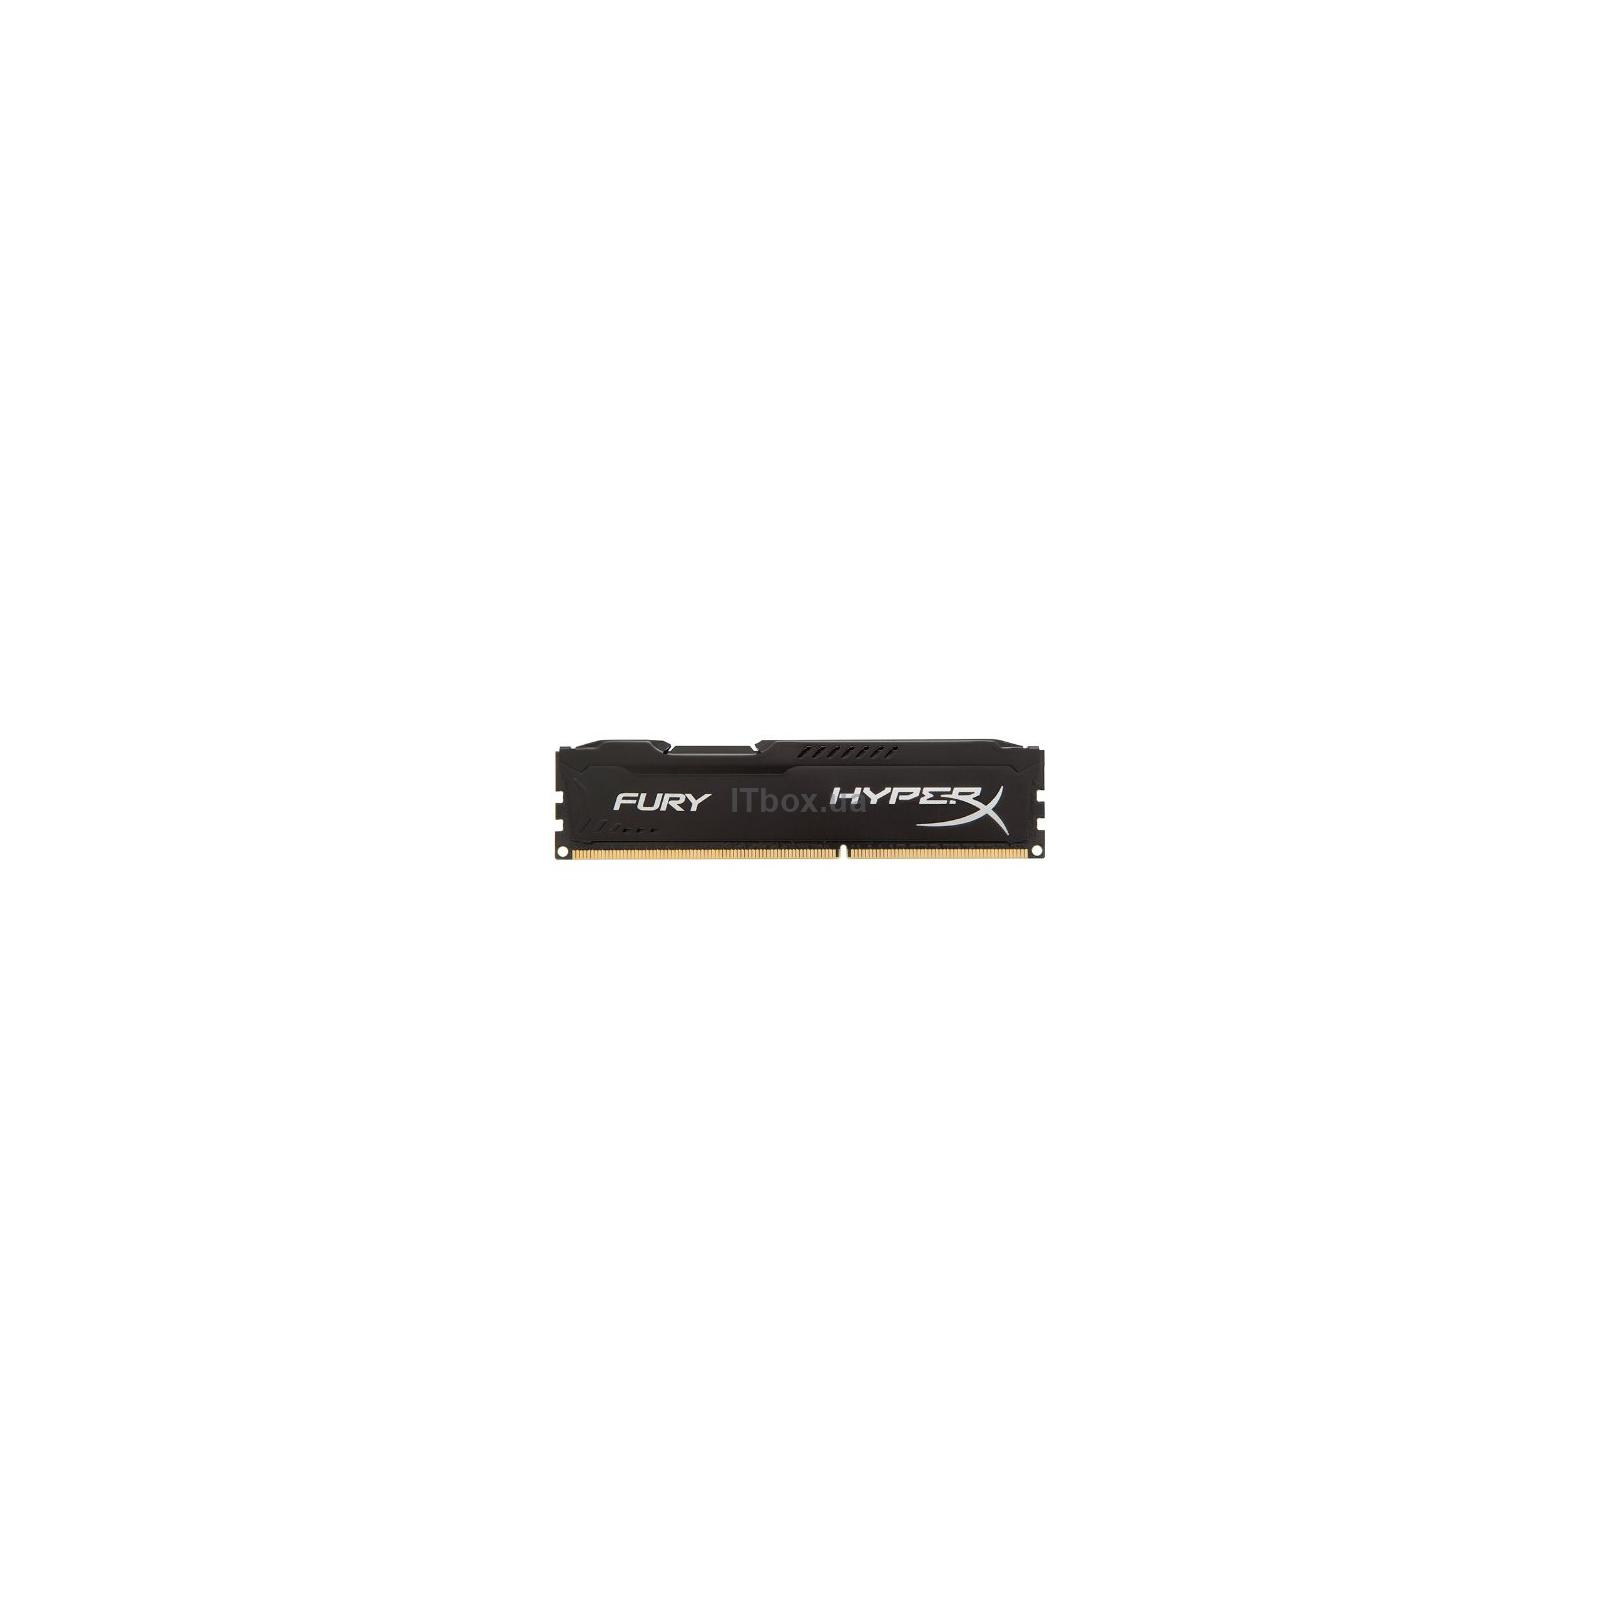 Модуль памяти Kingston HyperX Fury White Series DDR3 DIMM 1600MHz PC3-12800 CL10 - 8Gb KIT (2x4Gb) HX316C10FWK2/8